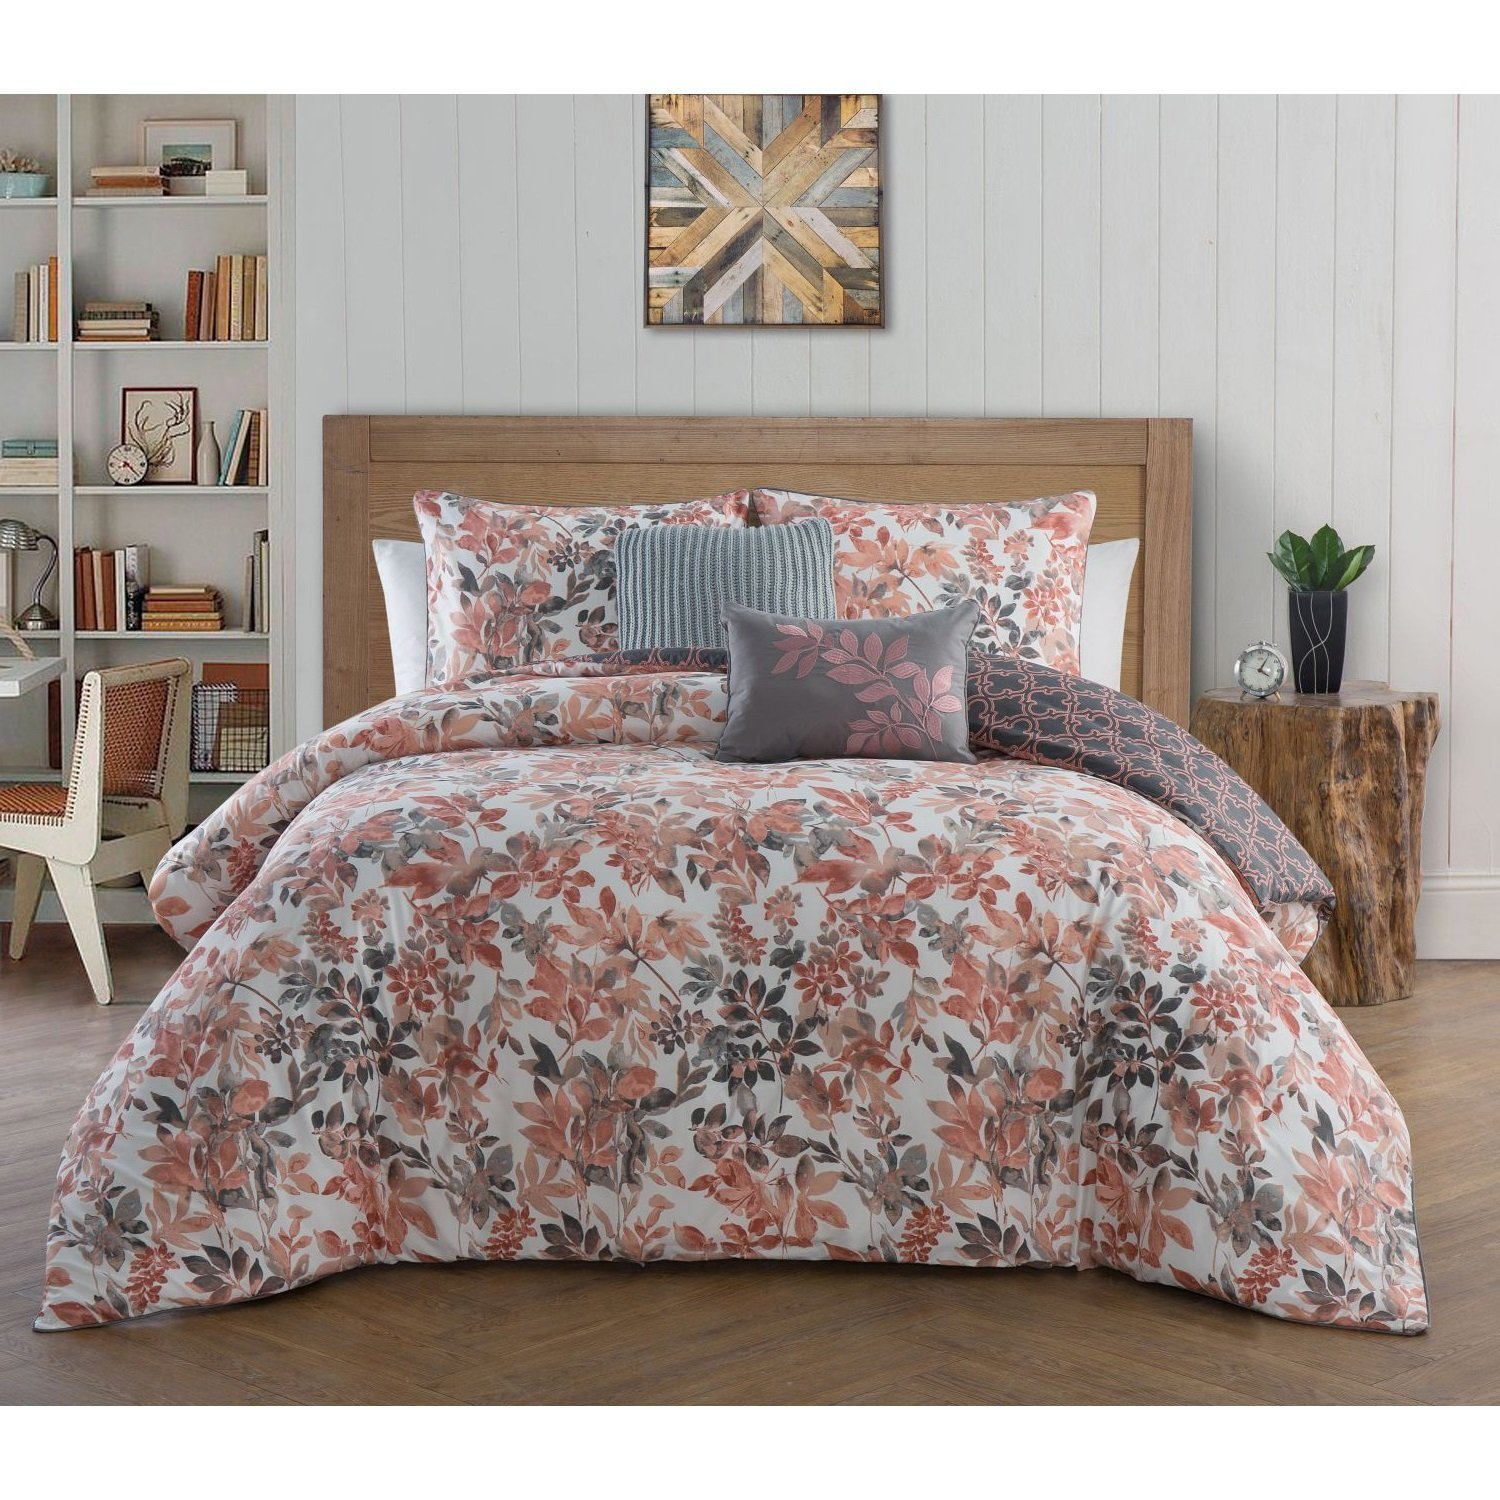 Cheap French Country Bedding Find French Country Bedding Deals On